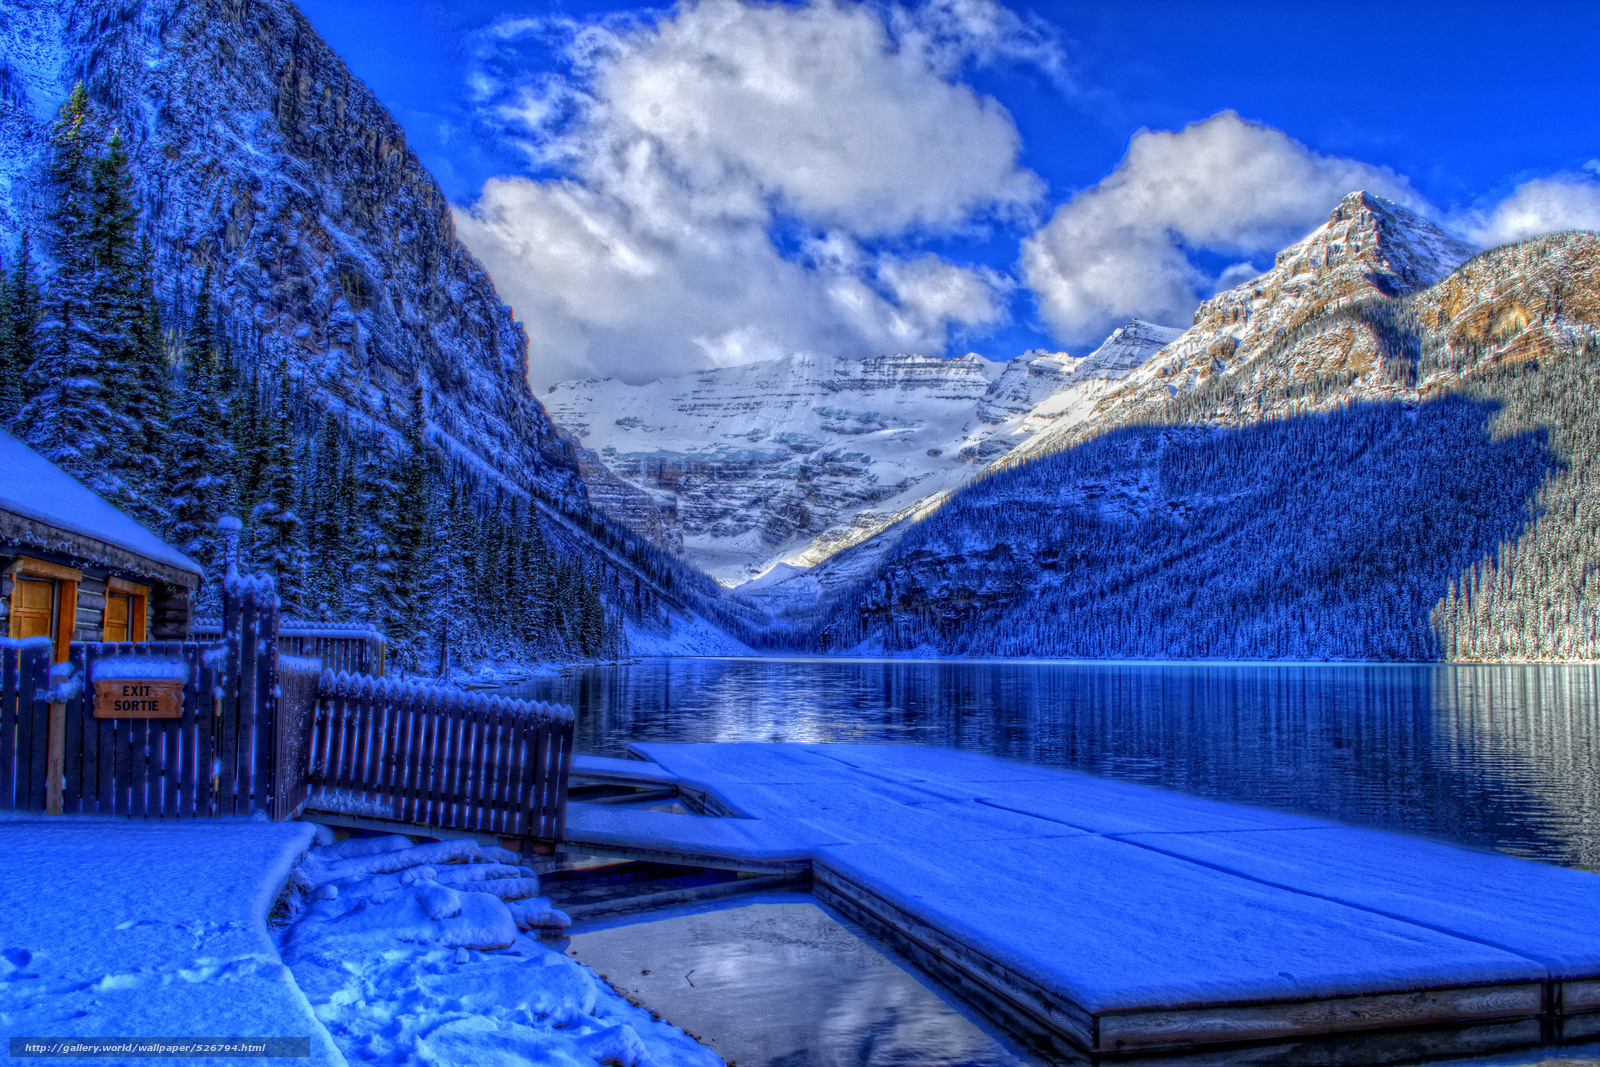 Download wallpaper lake louise banff national park alberta canada 1600x1067